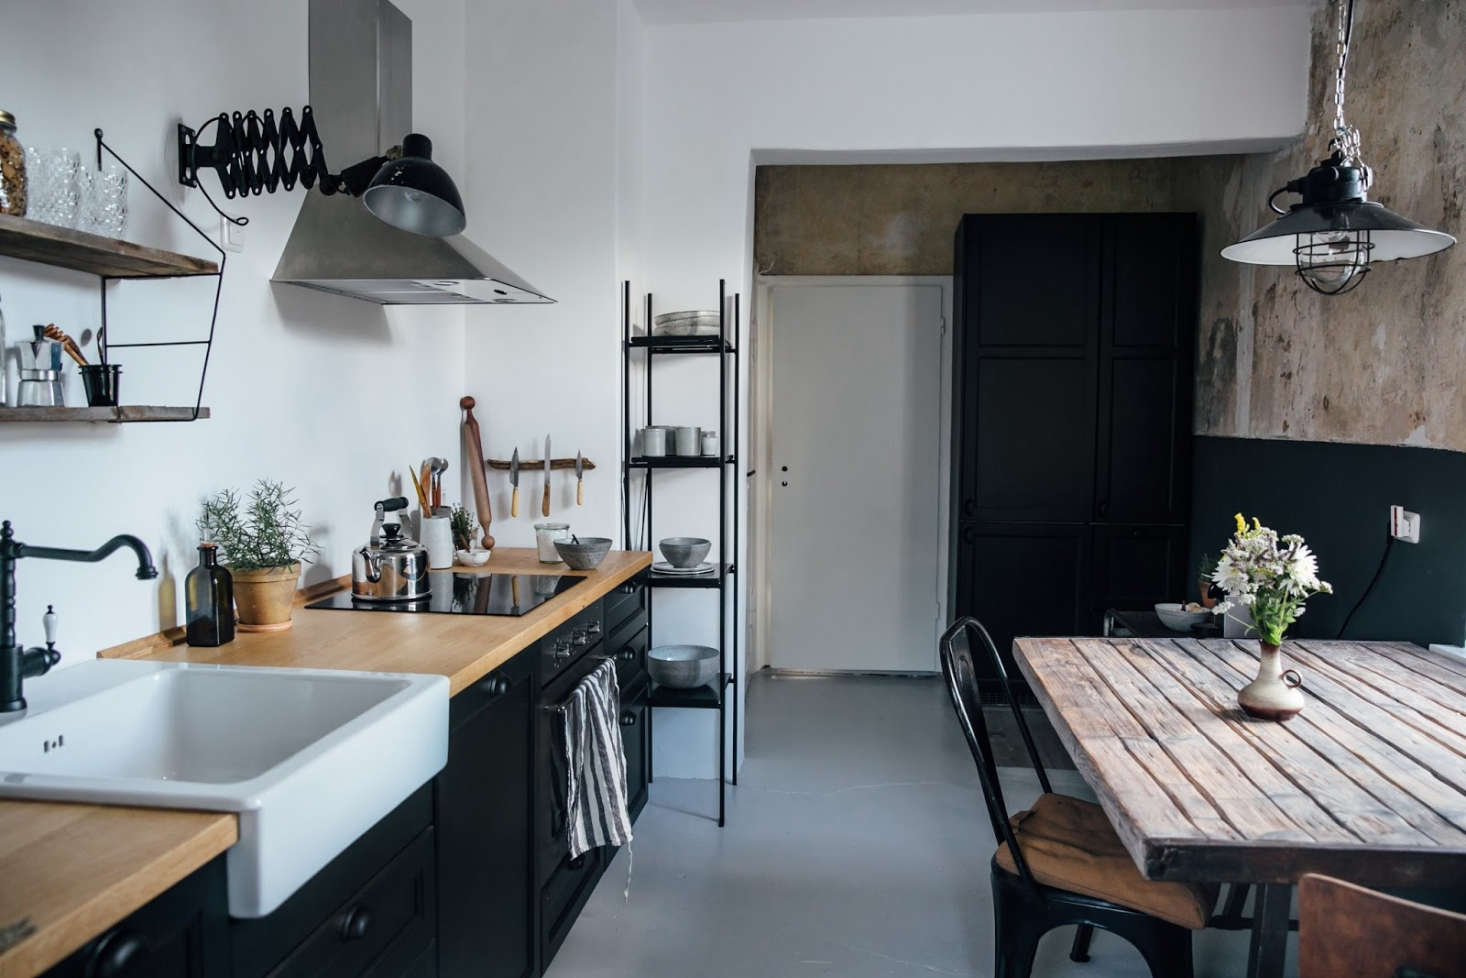 Our-Home-Stories-Ikea-kitchen-Remodelista-5B